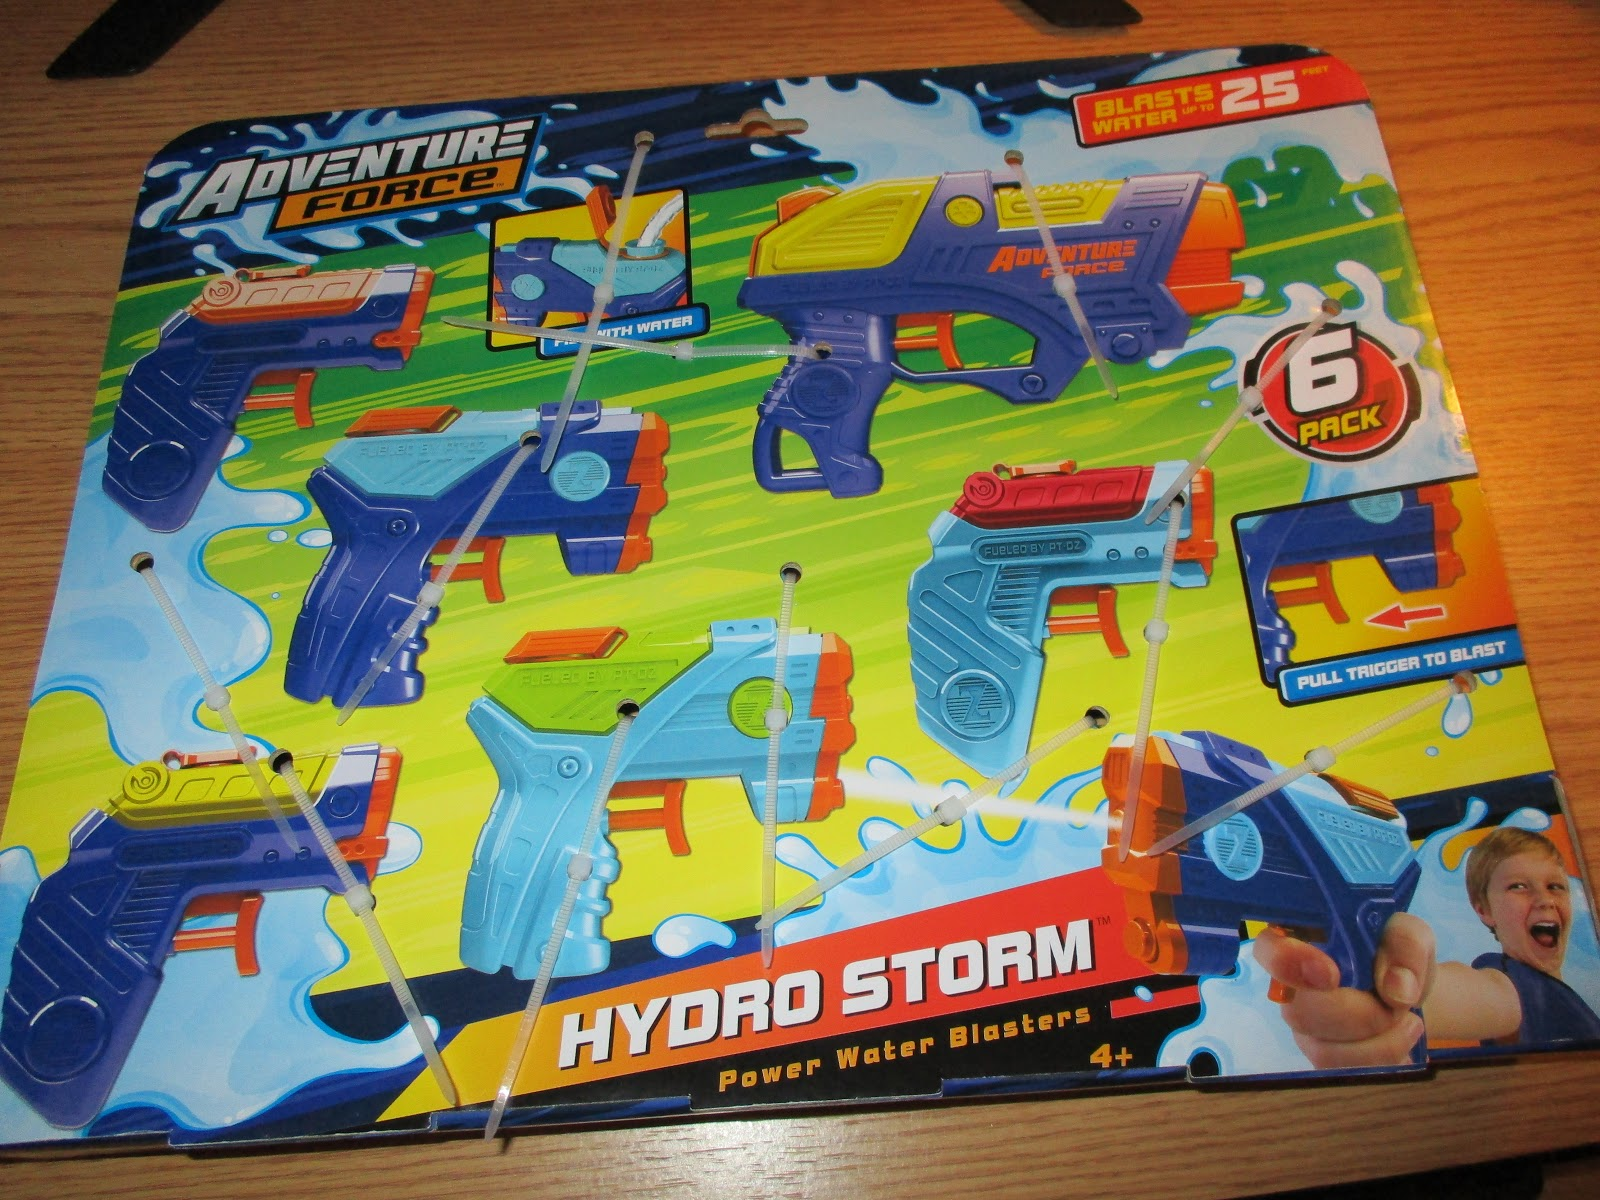 missys product reviews adventure force hydro storm from prime